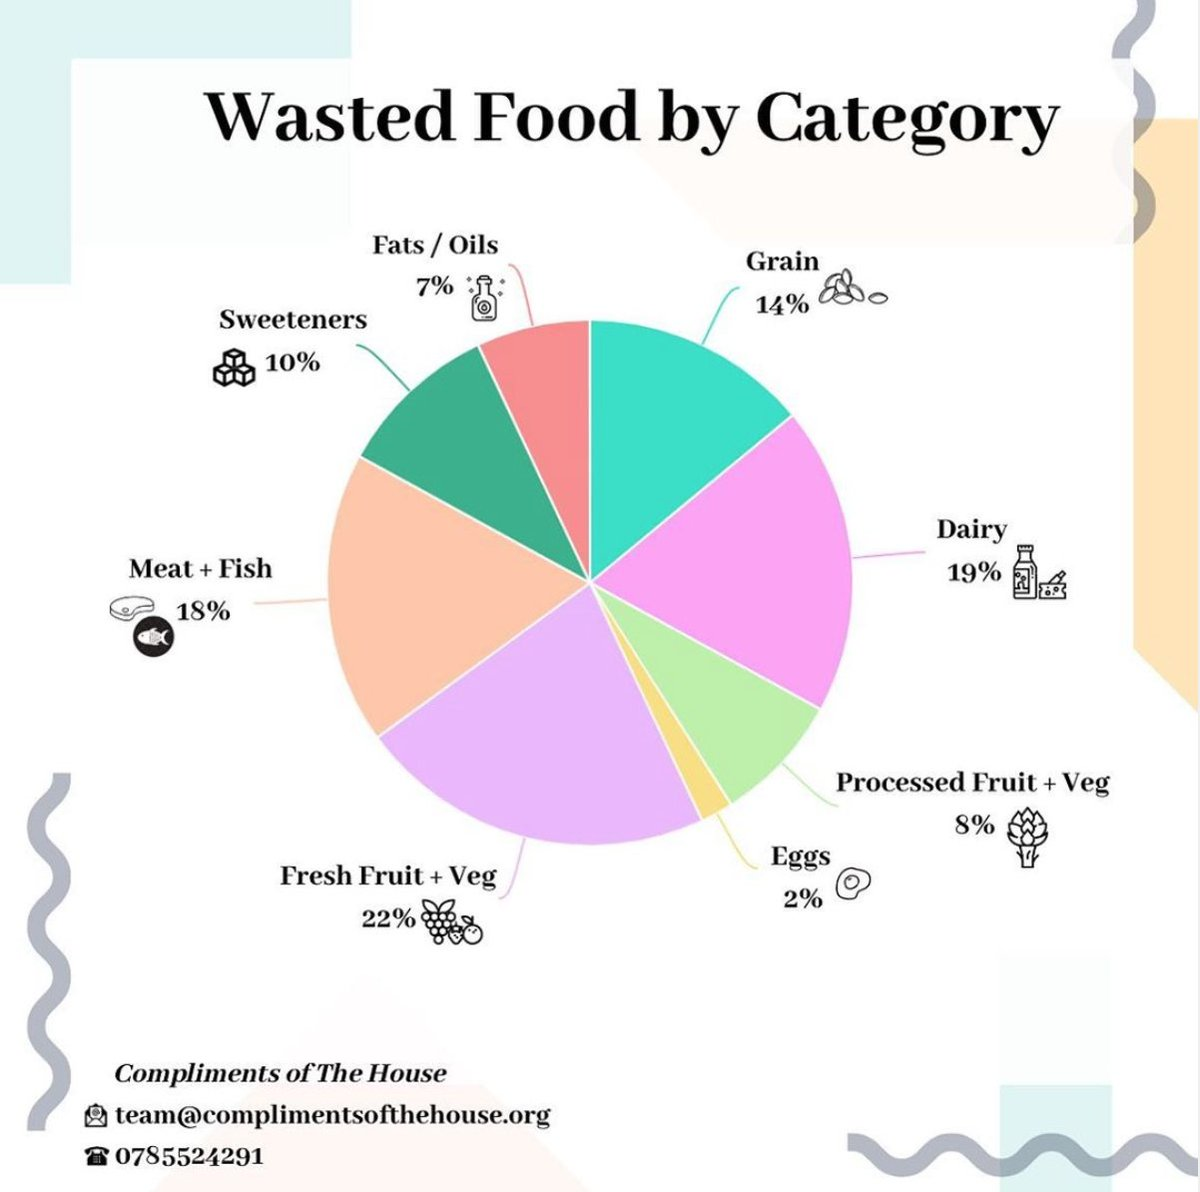 Please let's all attempt to be more mindful of food waste. It starts with us! 🗑🥕🥖🥗🍕#Complimentsofthehouse #FoodWaste #LiveLoveFood #FoodDonation #Charity #streetfood